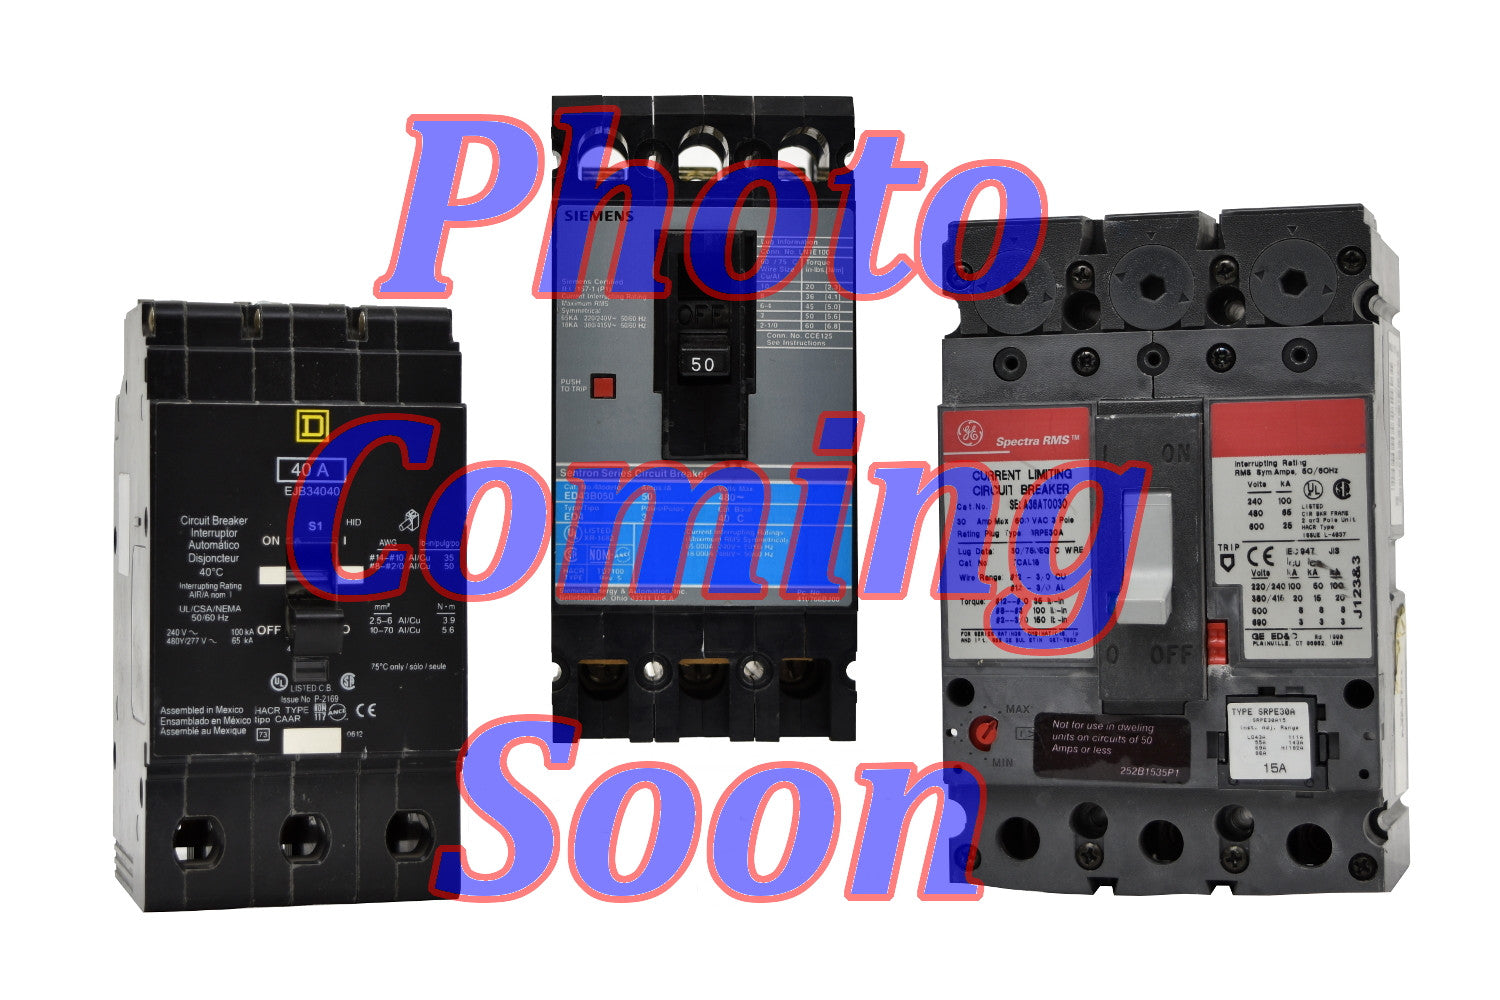 Square D DGN36250E20 Circuit Breakers